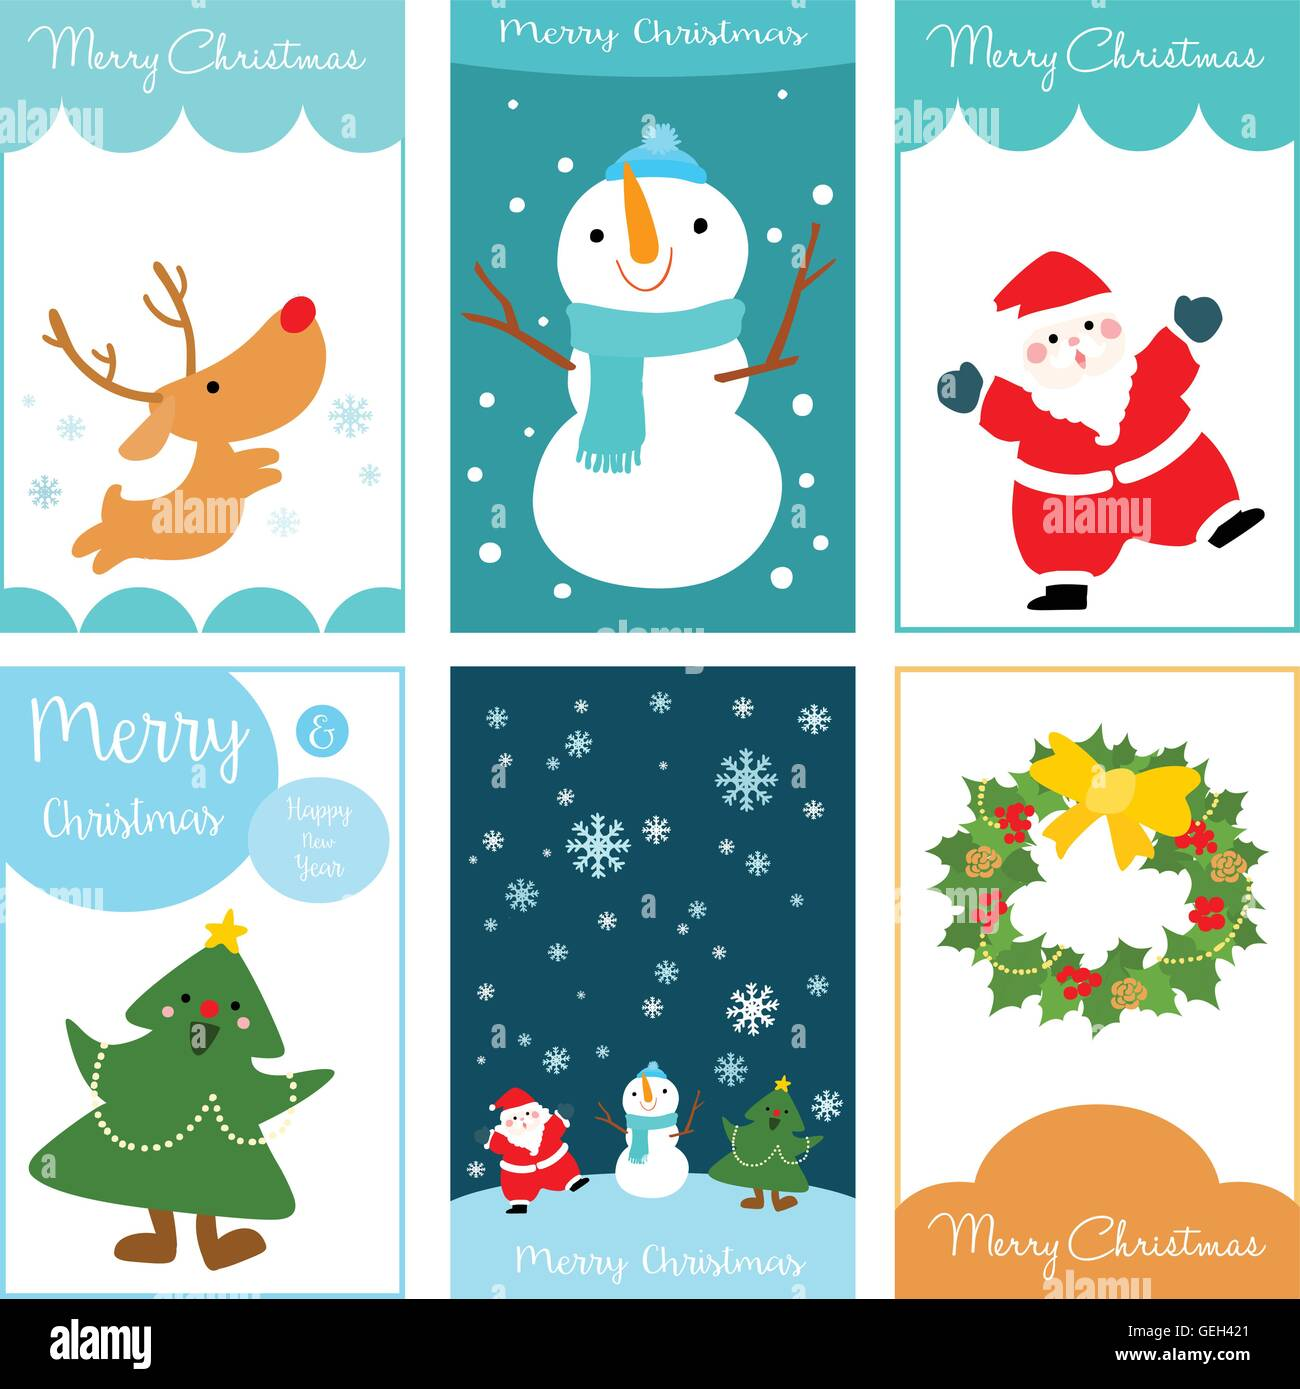 merry christmas and happy new year card vector set illustration